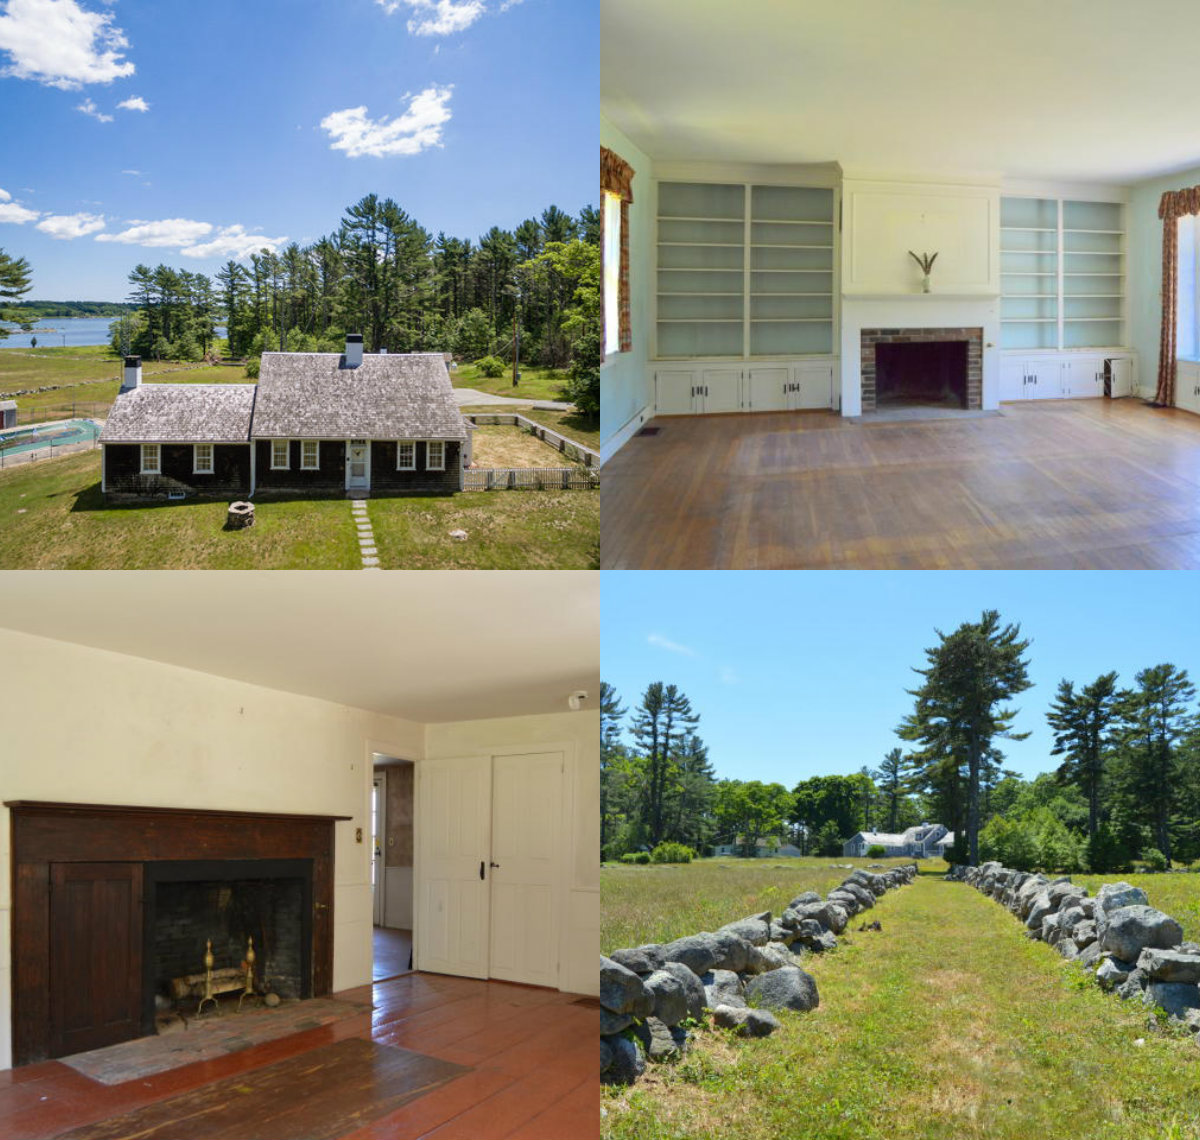 Images of 618 A Delano Road in Marion on Cape Cod MA